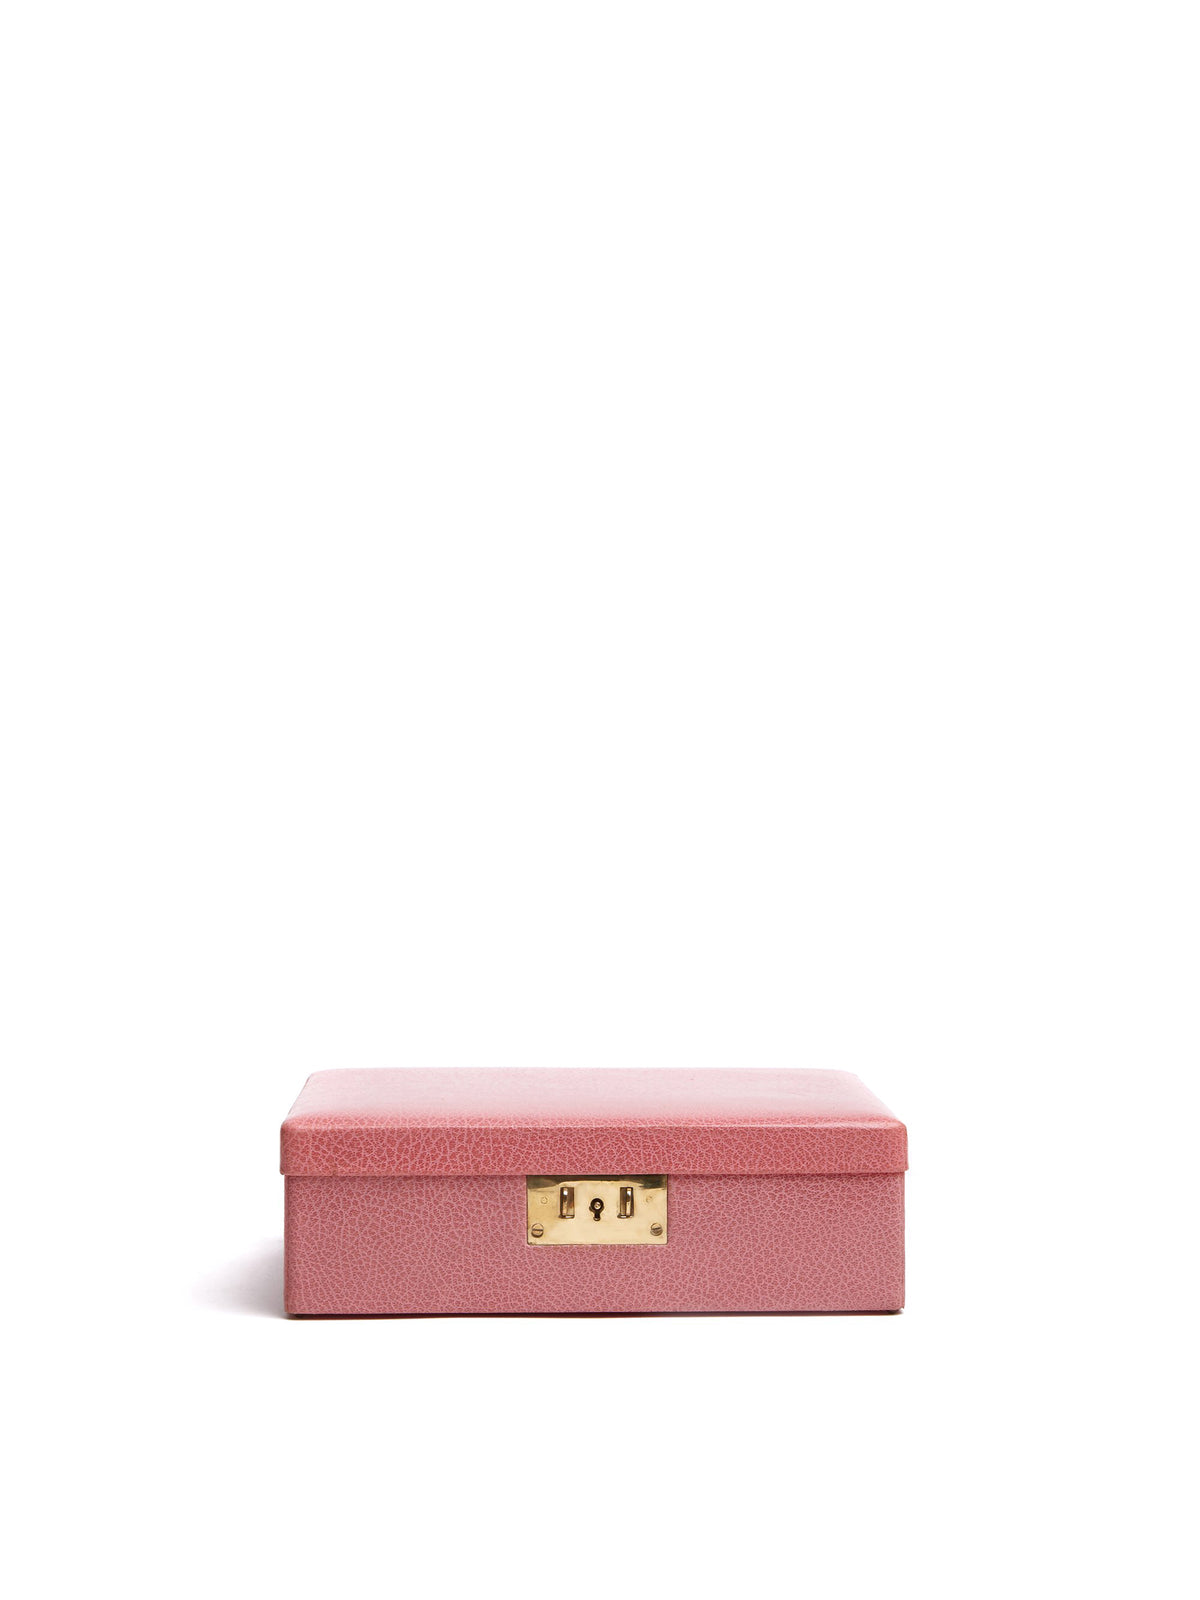 Mark Cross Vintage Leather Jewelry Box Pink Side